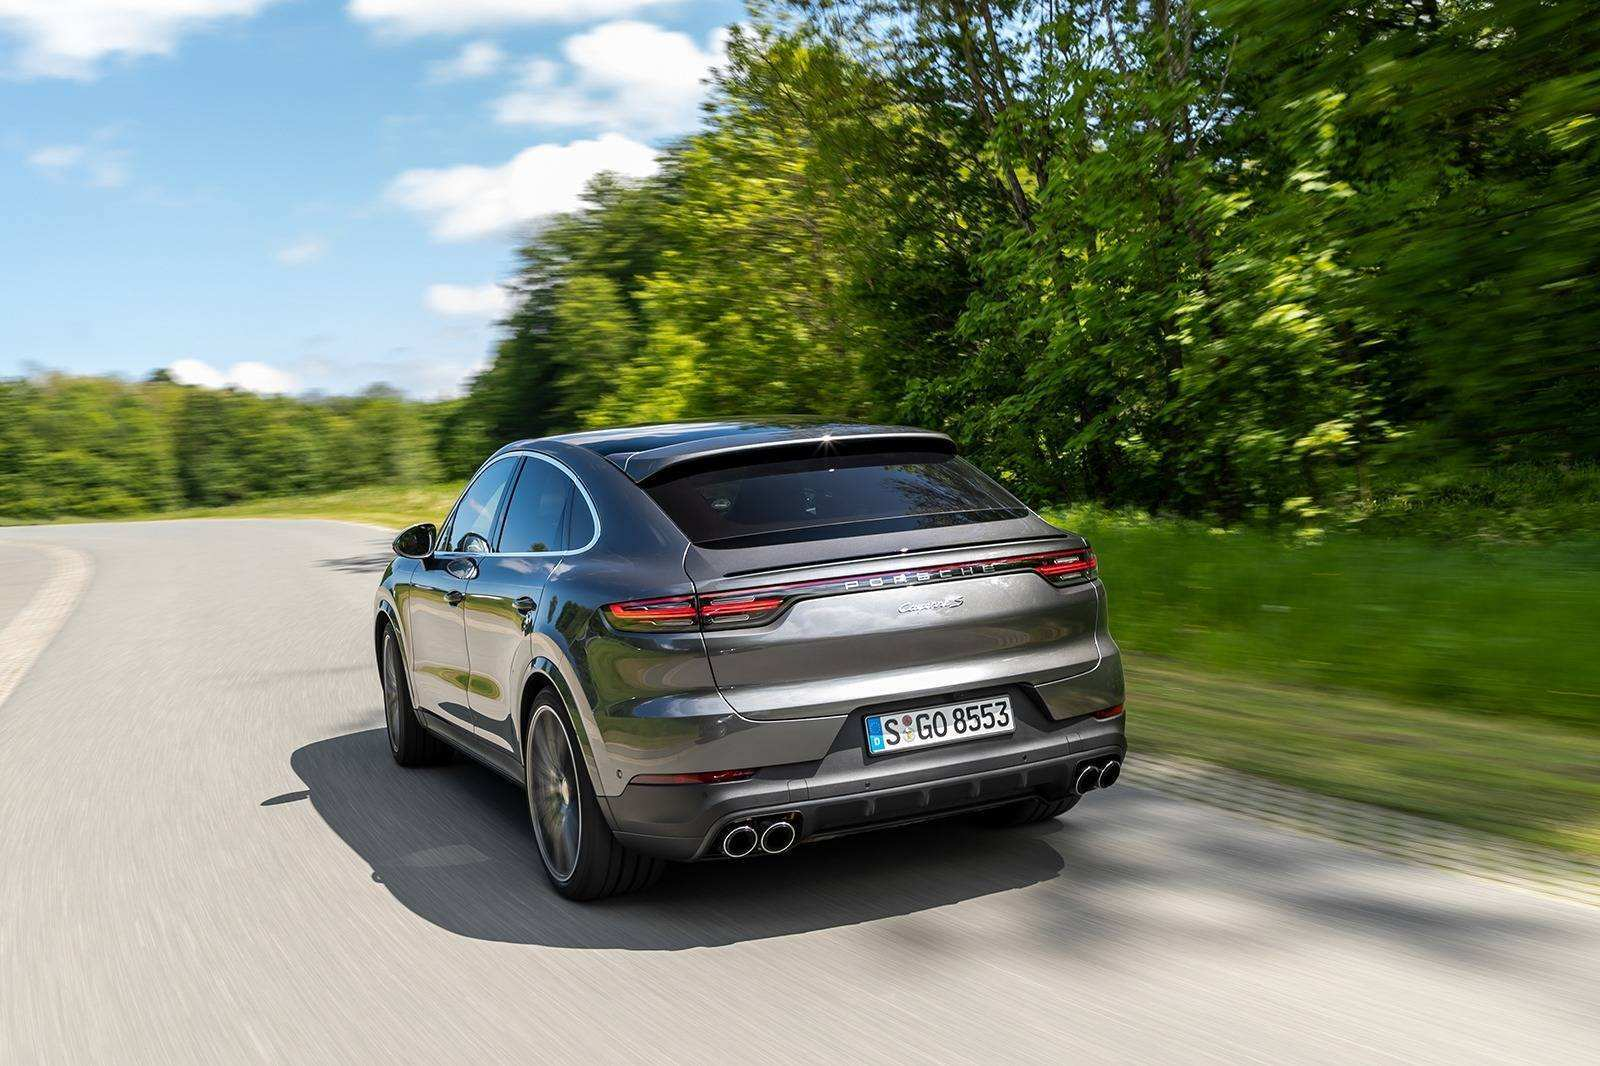 45 The Best 2020 Porsche Cayenne Model Redesign